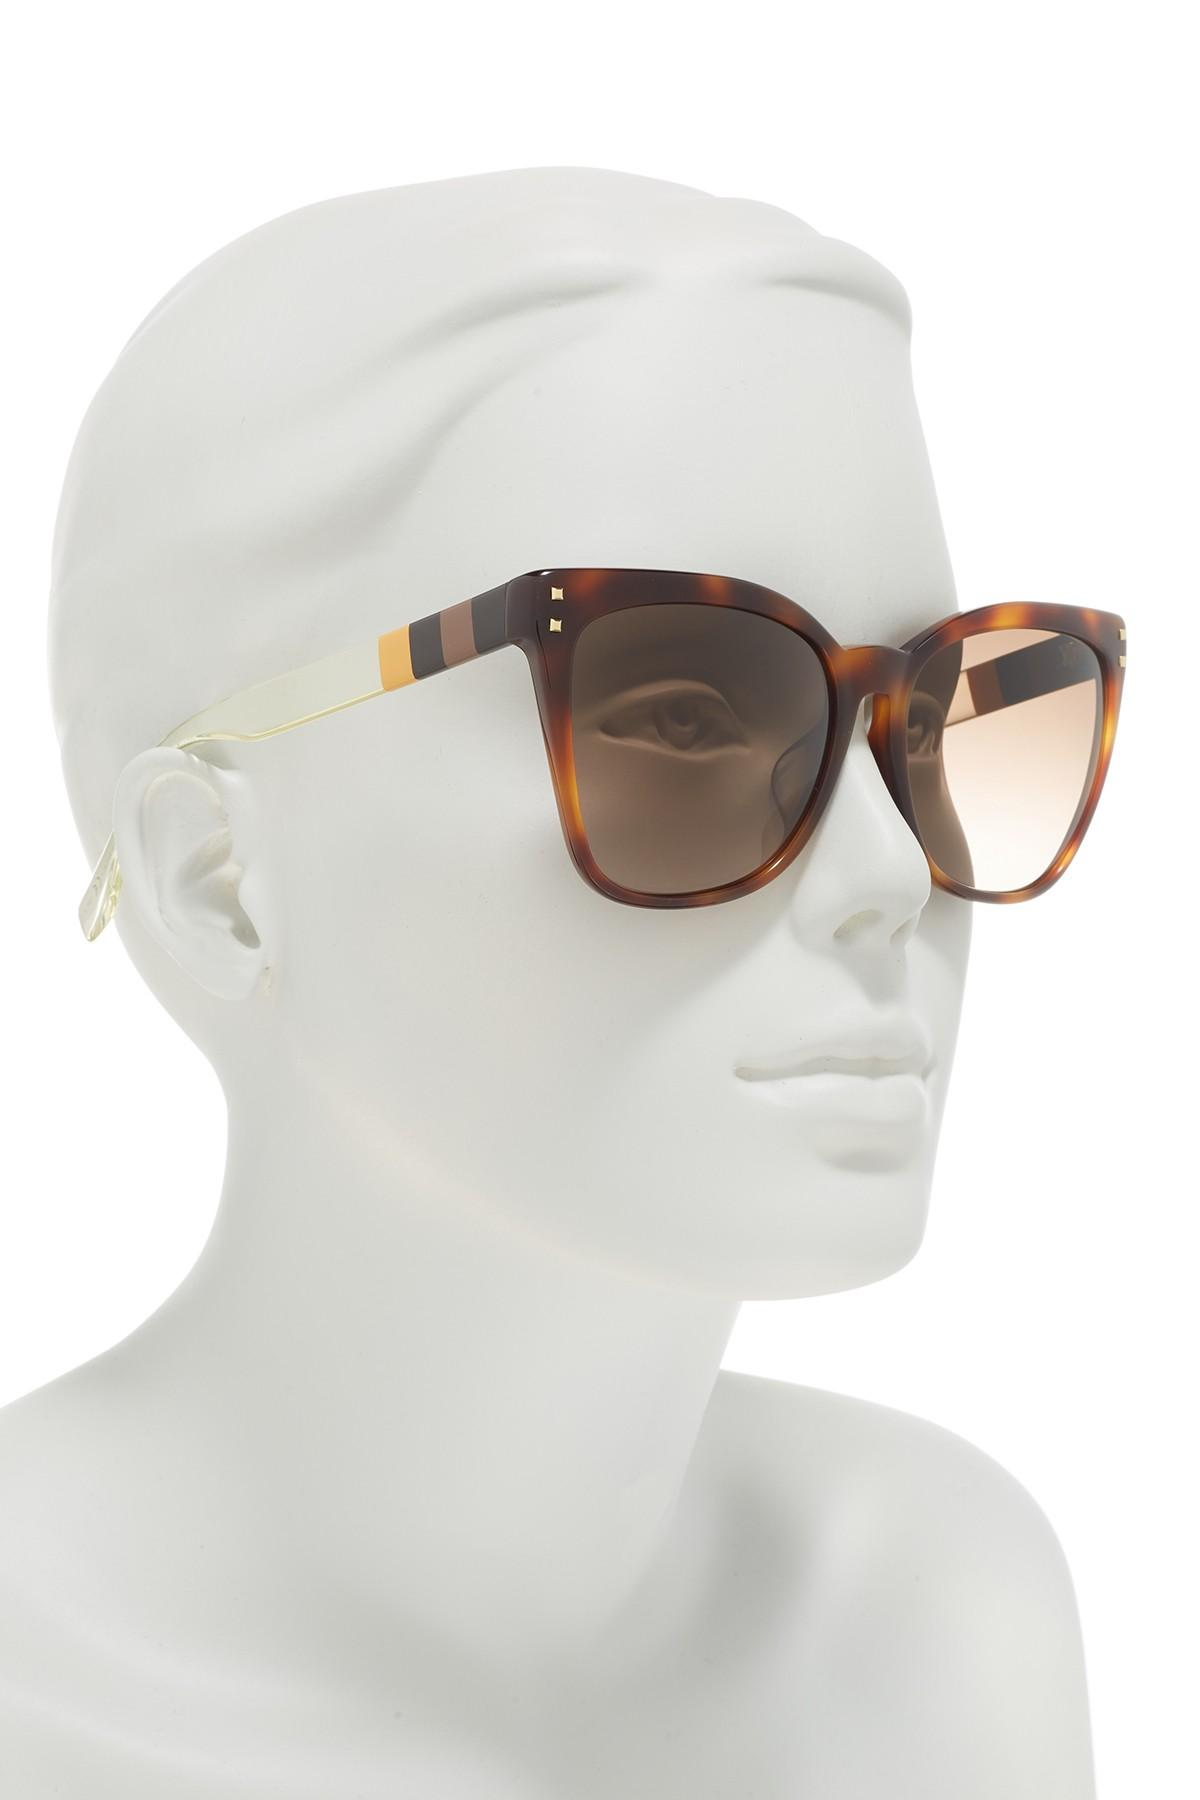 4e593e34451e Fendi - Multicolor 57mm Square Sunglasses - Lyst. View fullscreen